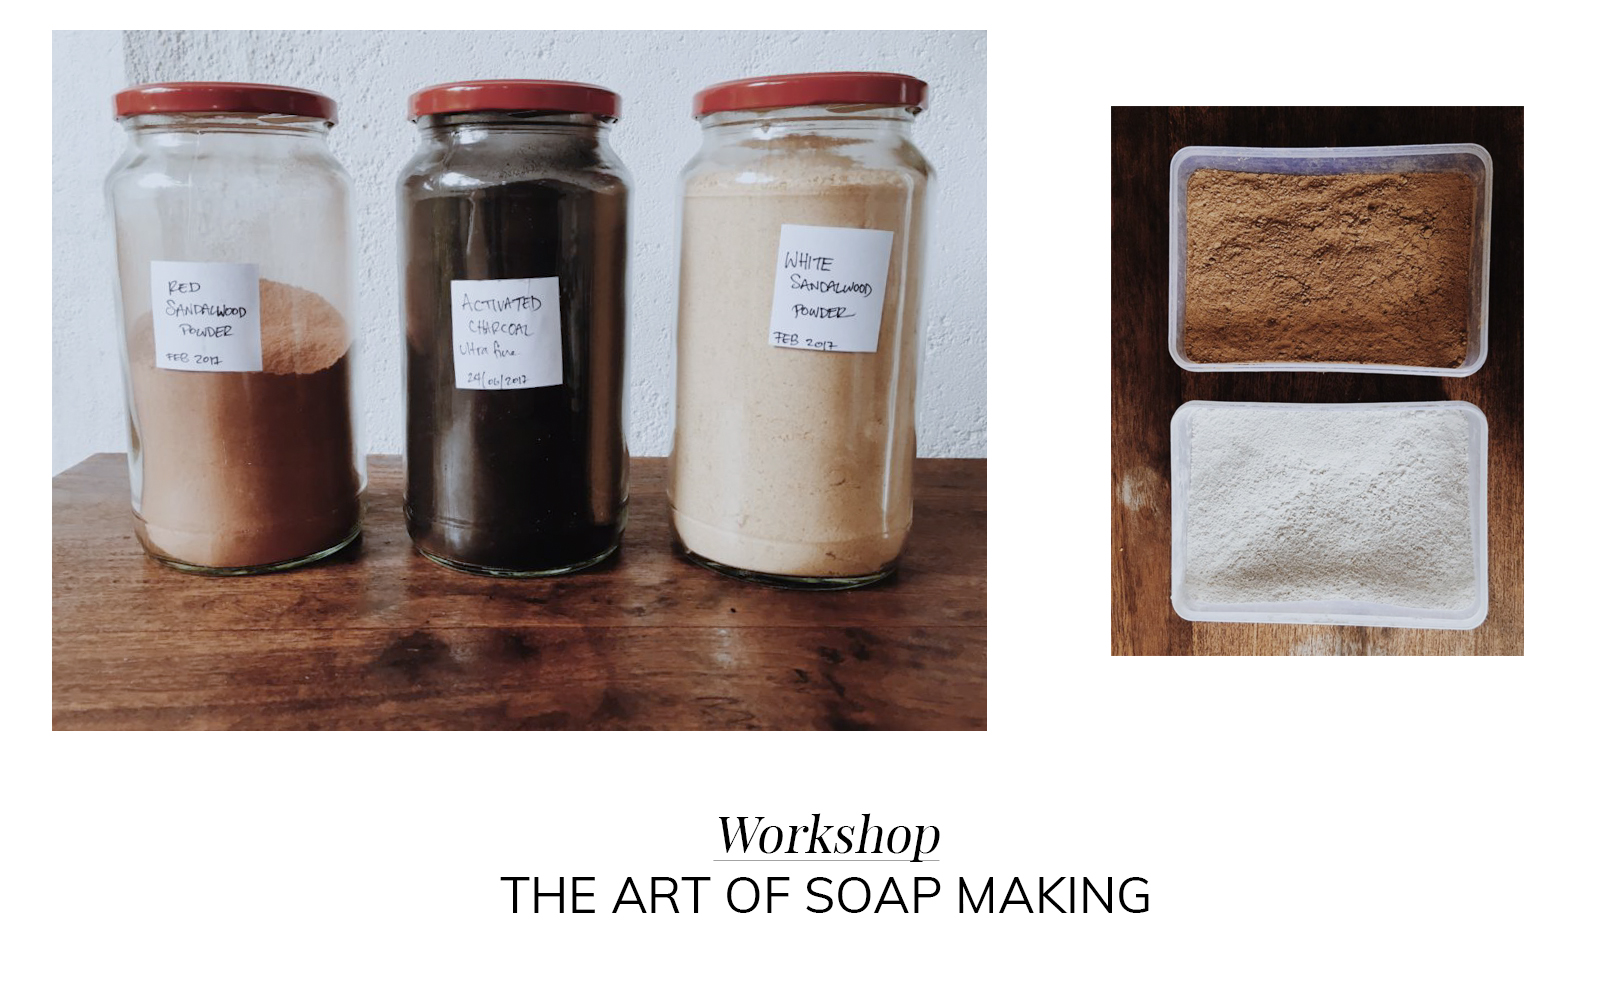 Ceylon Sliders Workshop: The art and science of soap making